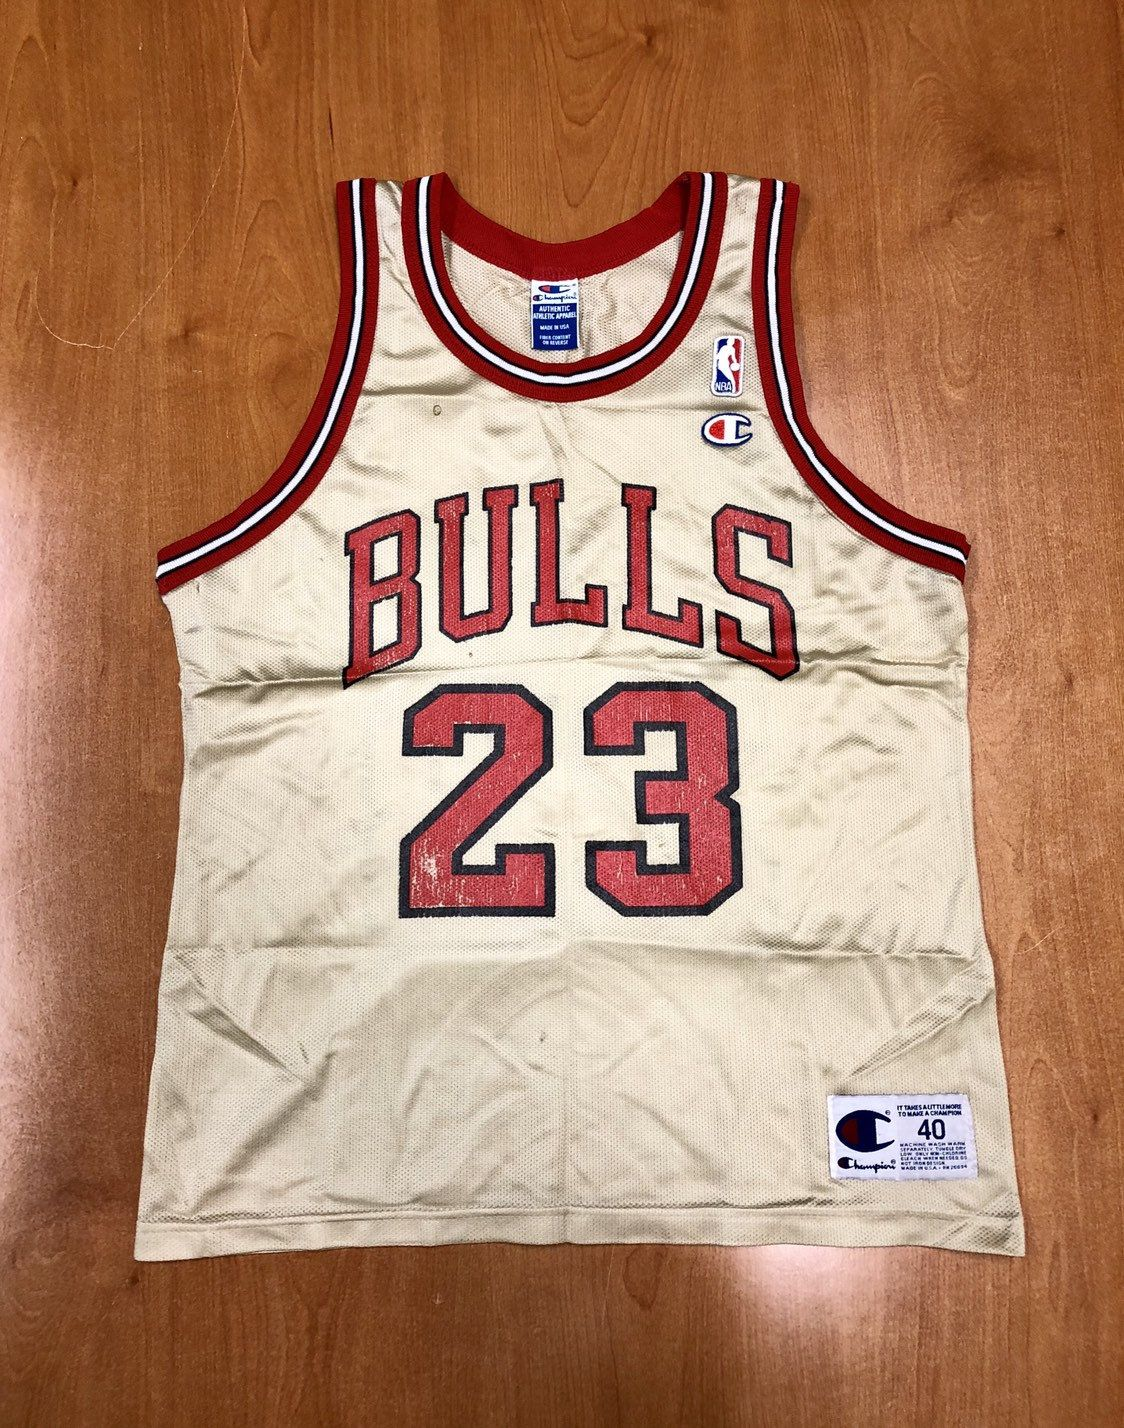 Vintage 1998 Michael Jordan Chicago Bulls Champion Gold Jersey Size 40 nba  finals hat shirt scottie pippen authentic air jumpman 45 by  BroadwayVintageLLC on ... a6c6093bc